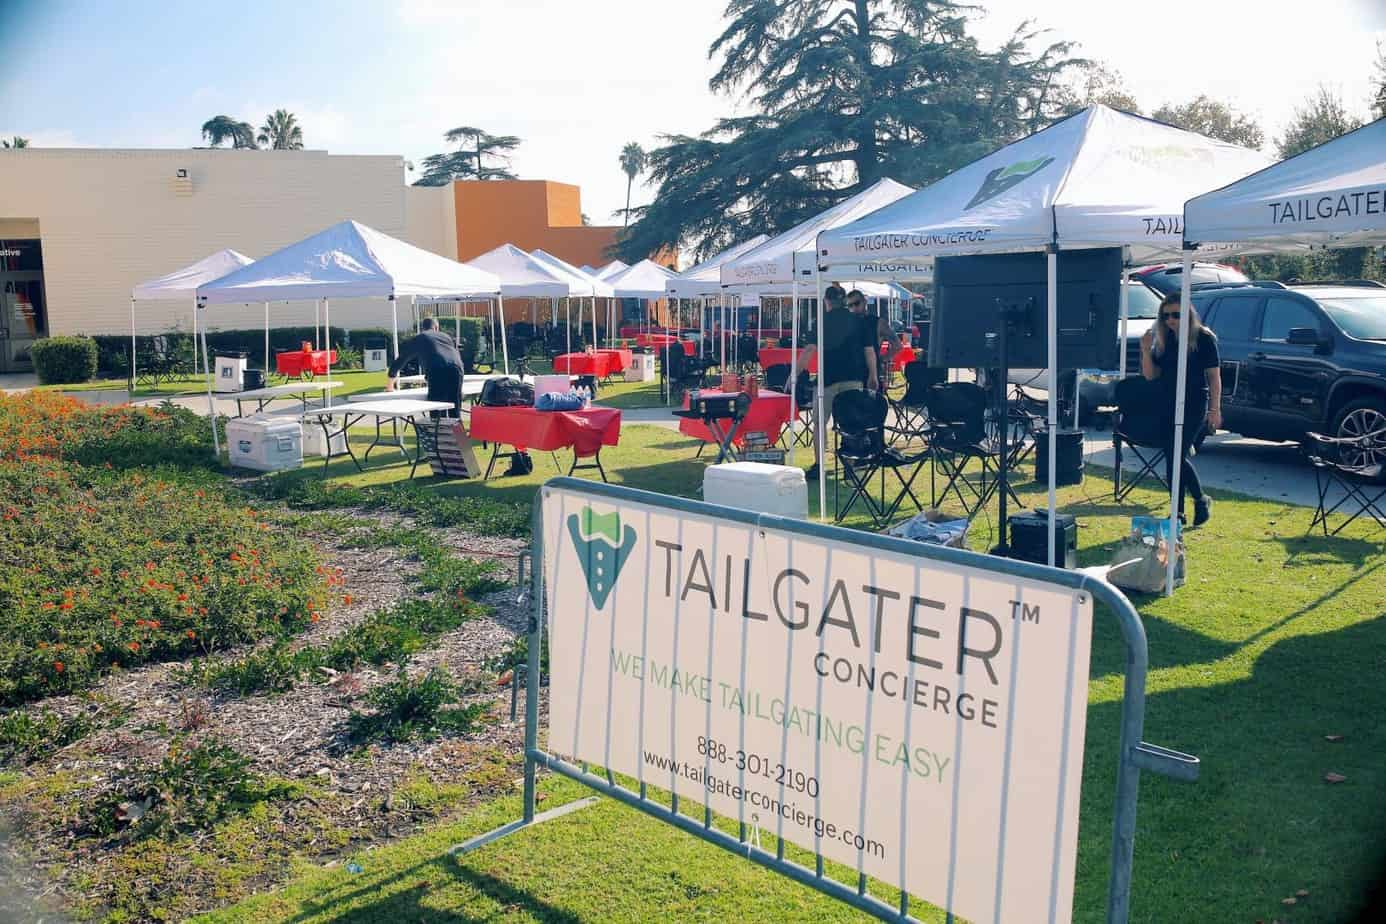 Tailgating Service at USC